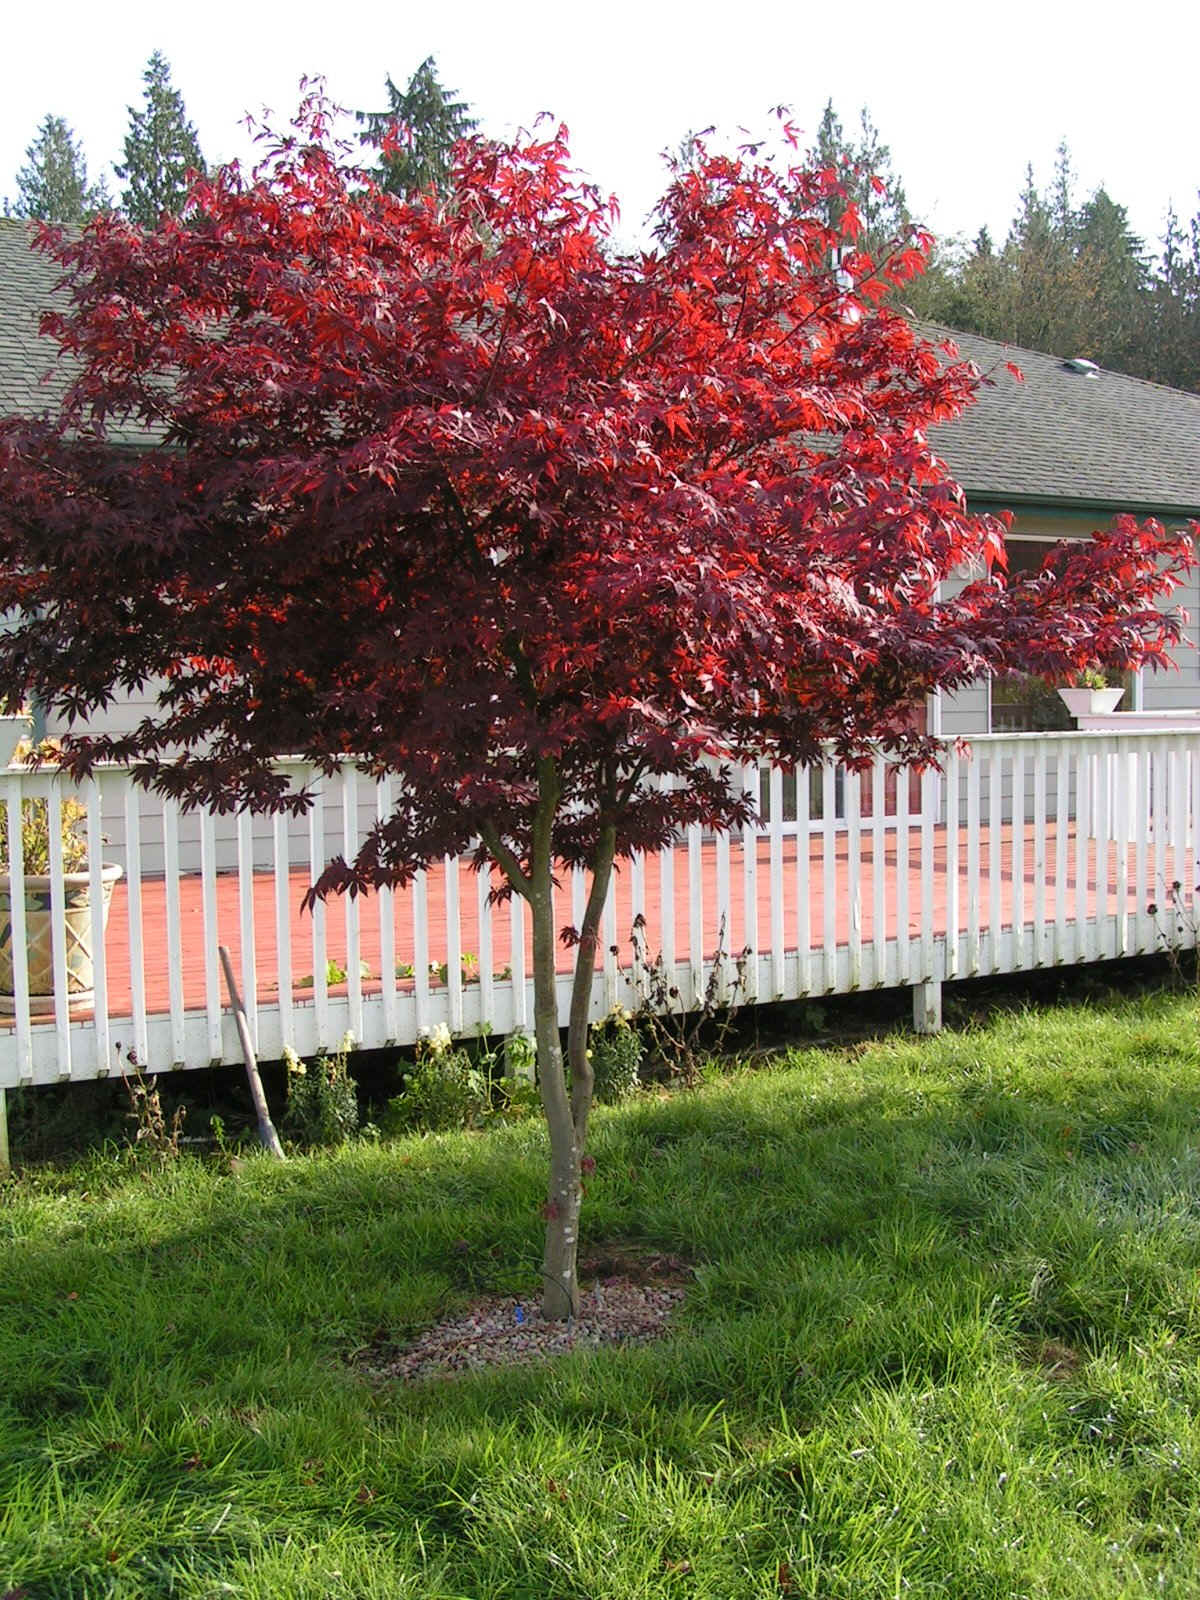 Redleaf japanese maple trees available in washington state for Japanese maple tree